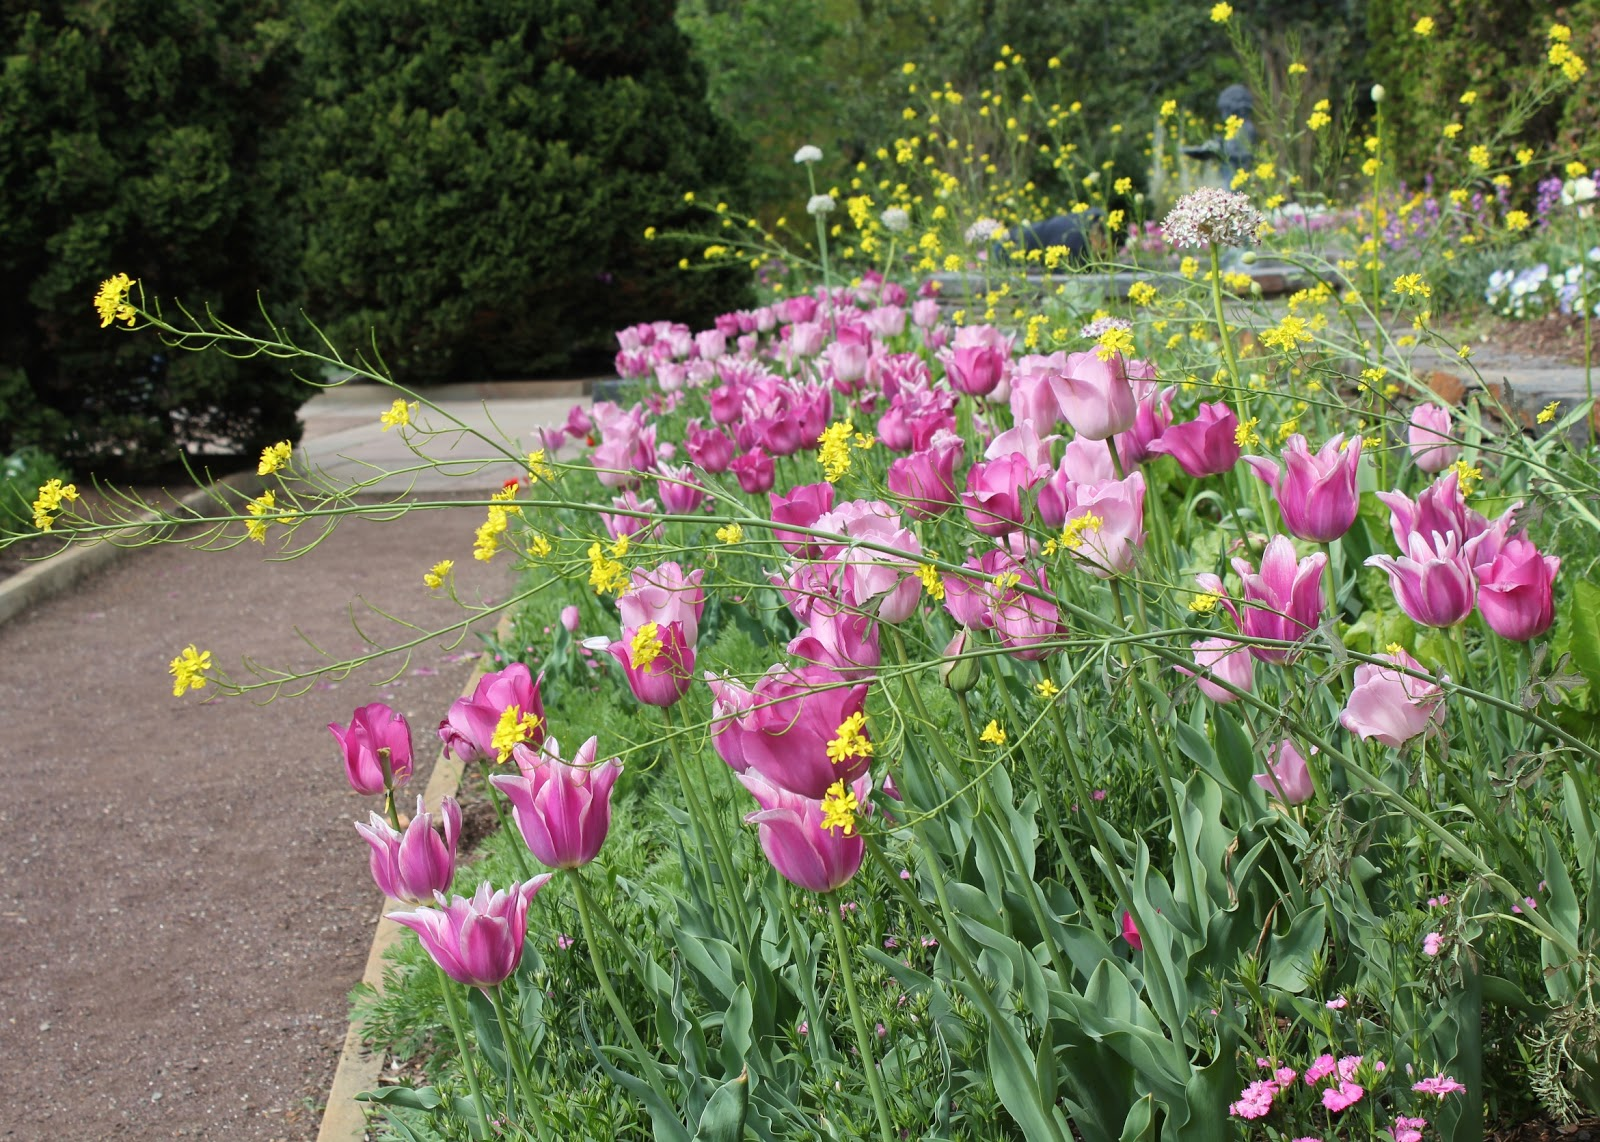 The wildlife garden in the h l blomquist garden of native plants -  Filled With Blooms In All Sorts Of Color Combinations